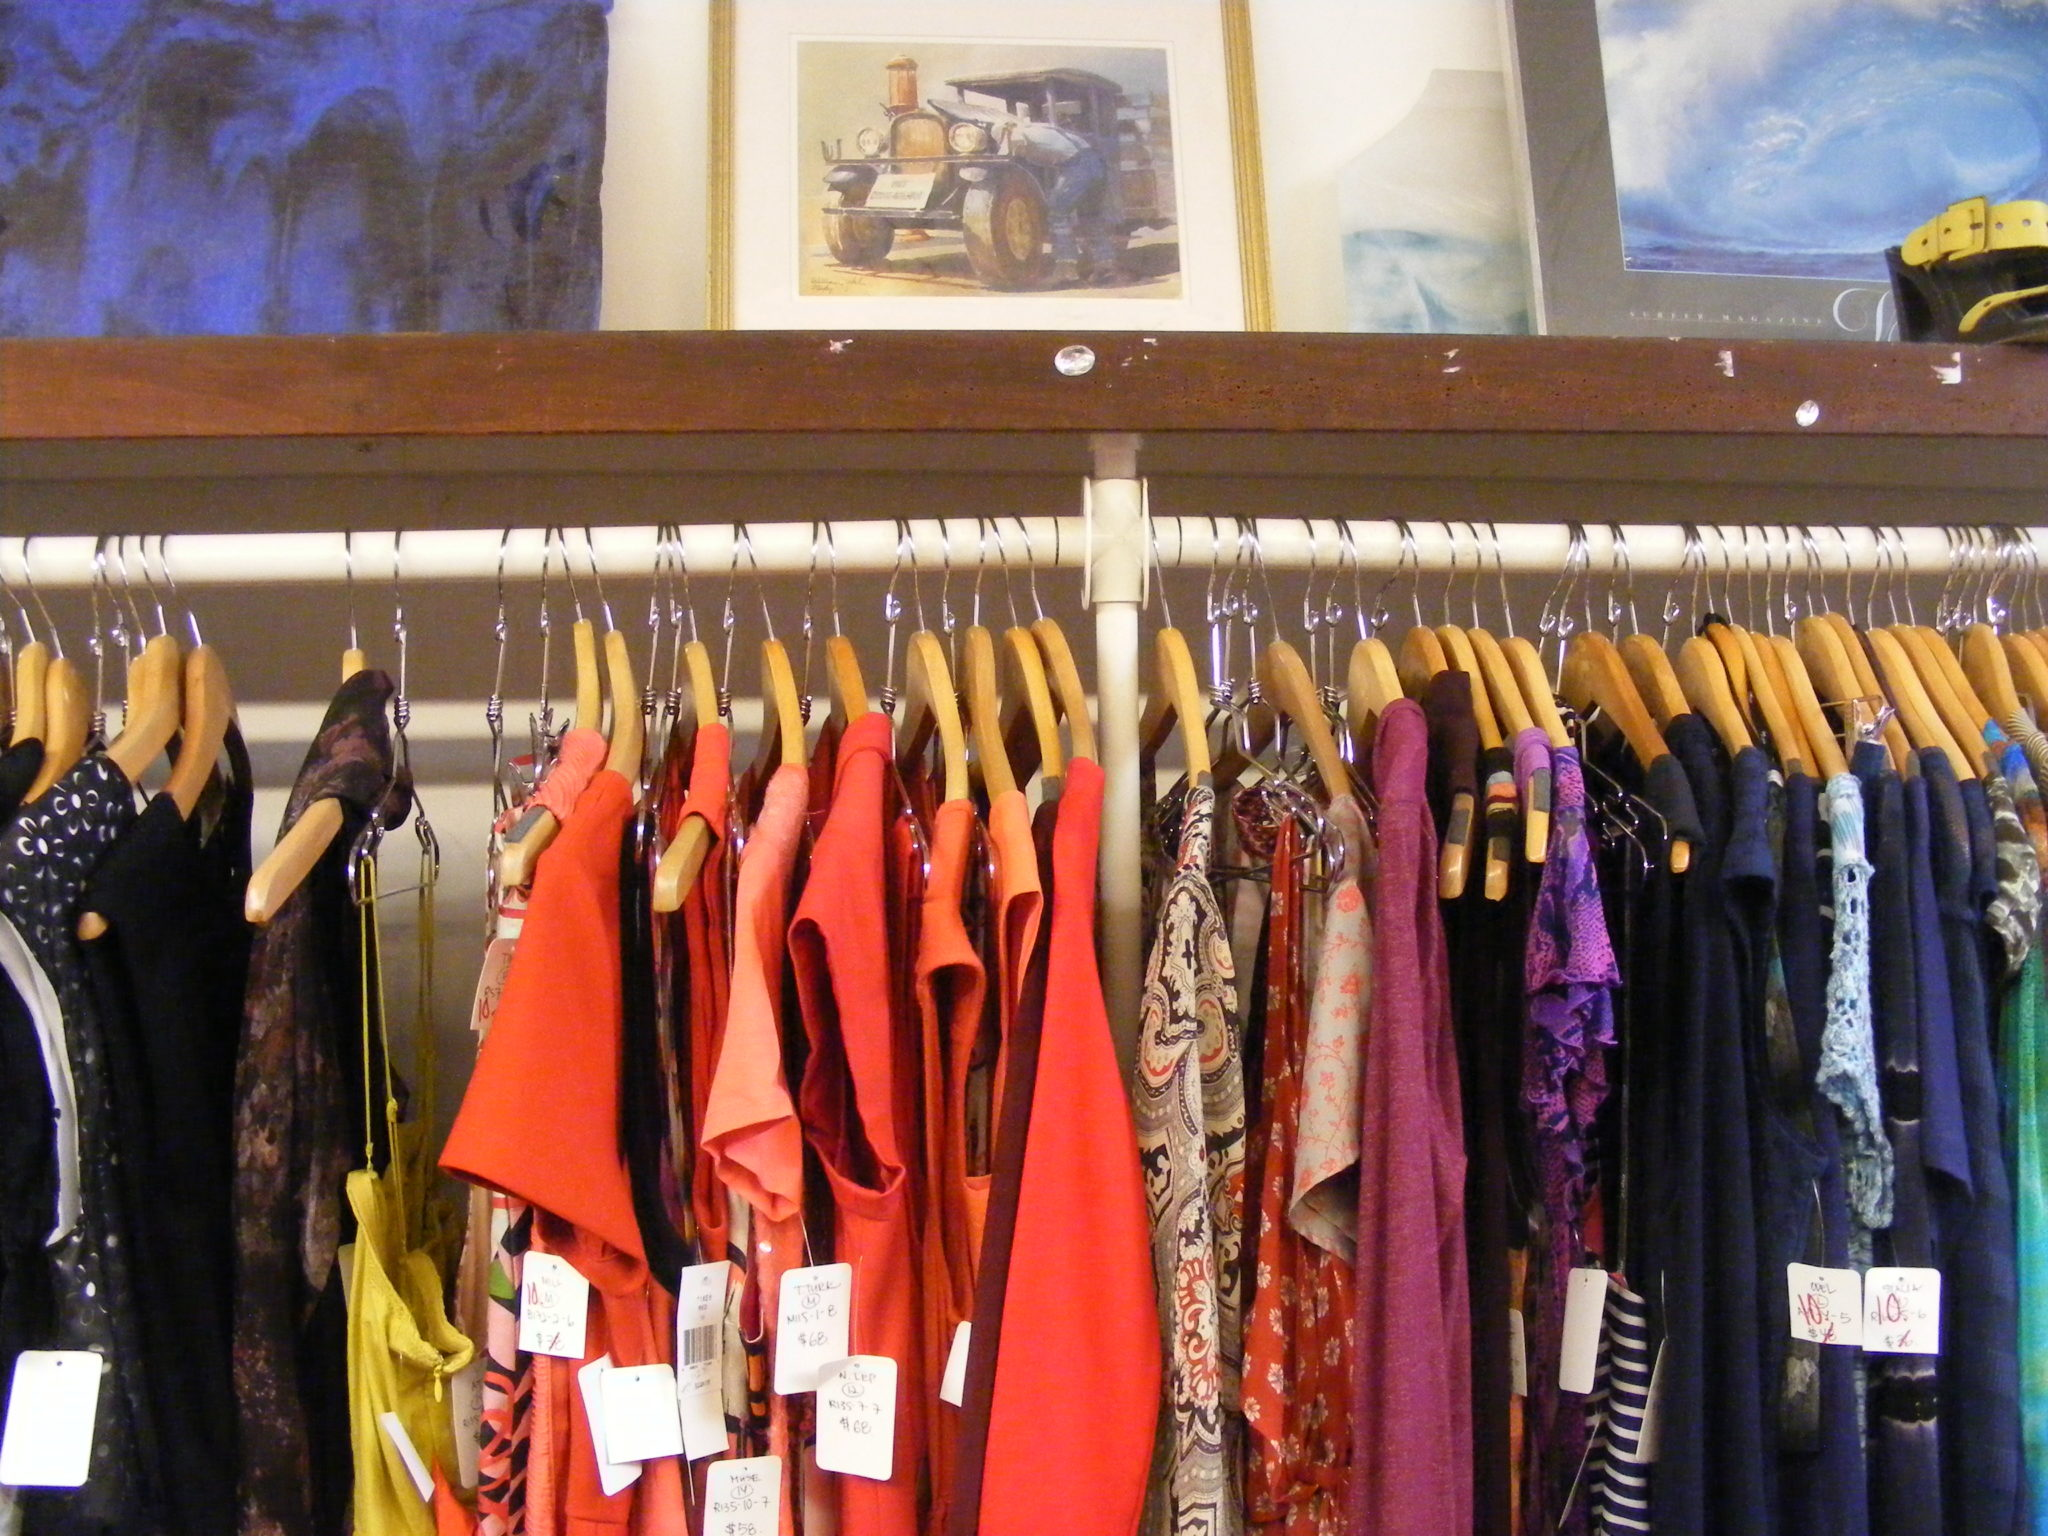 clothes at delightfully discounted prices photo by flora tsapovsky